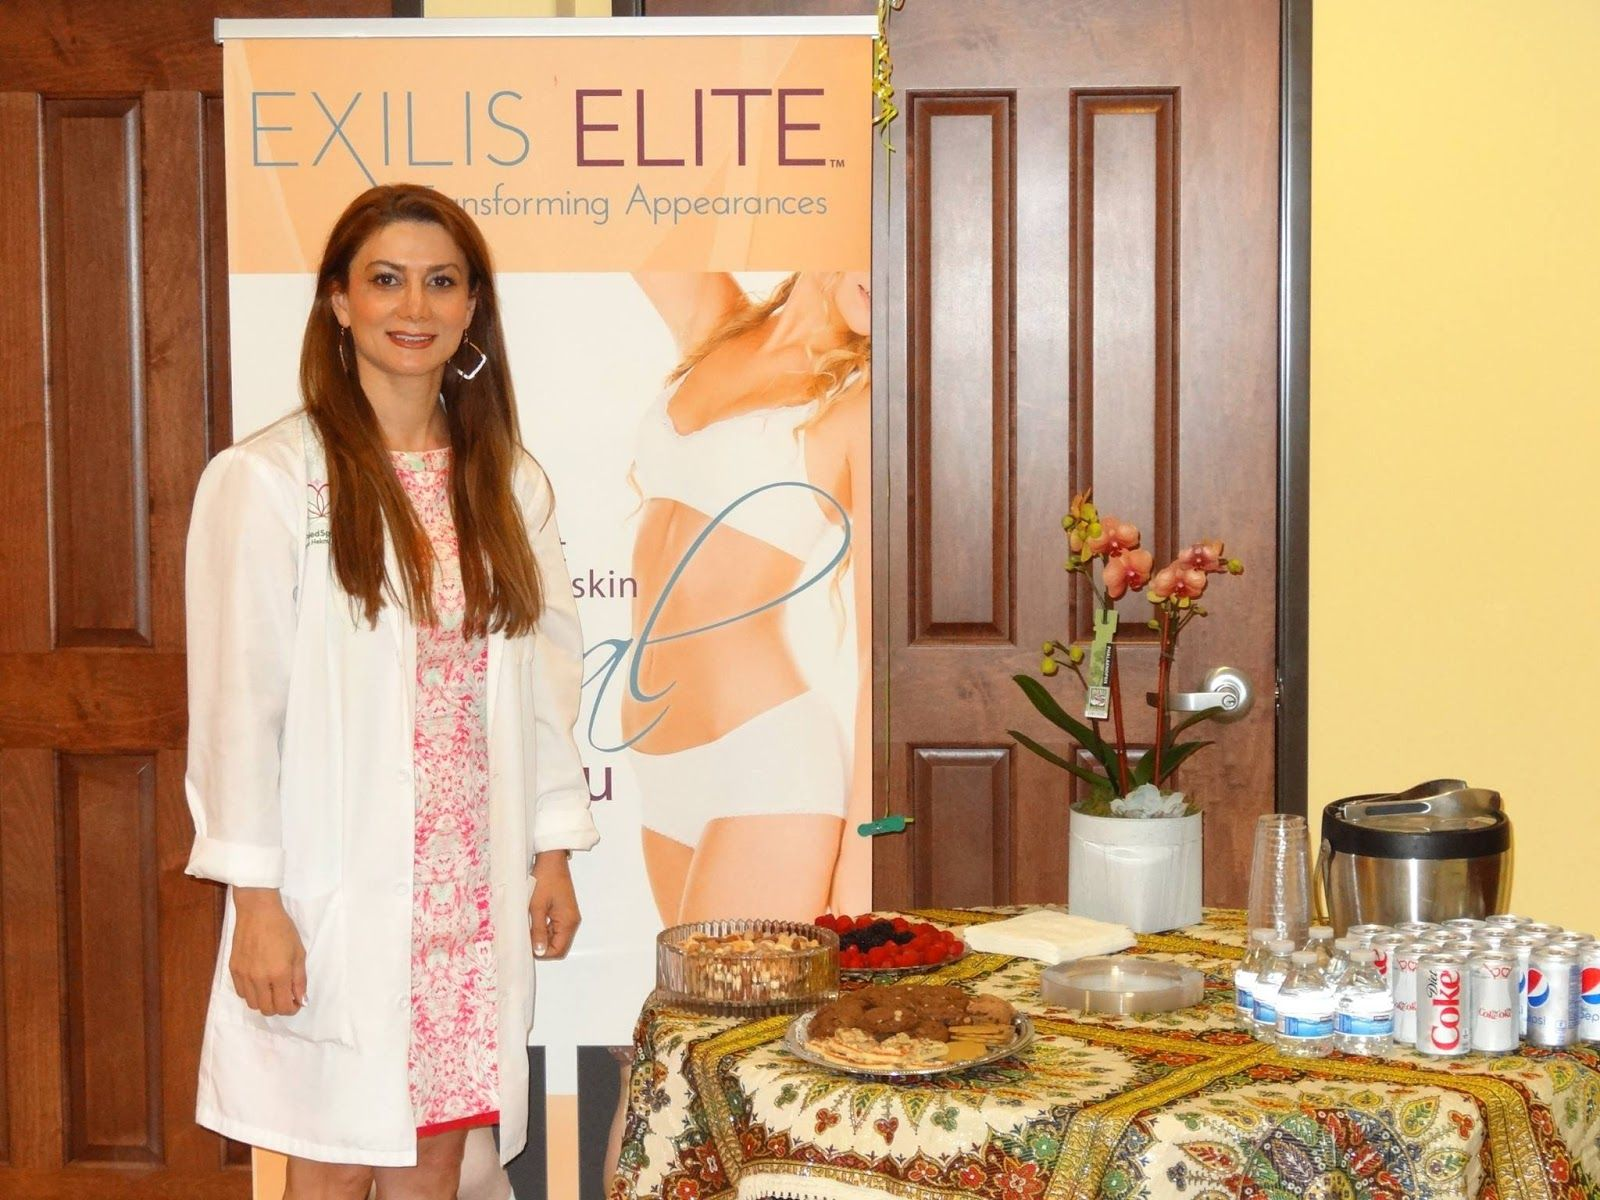 Photograph sourced from VIP Med Spa Clinic